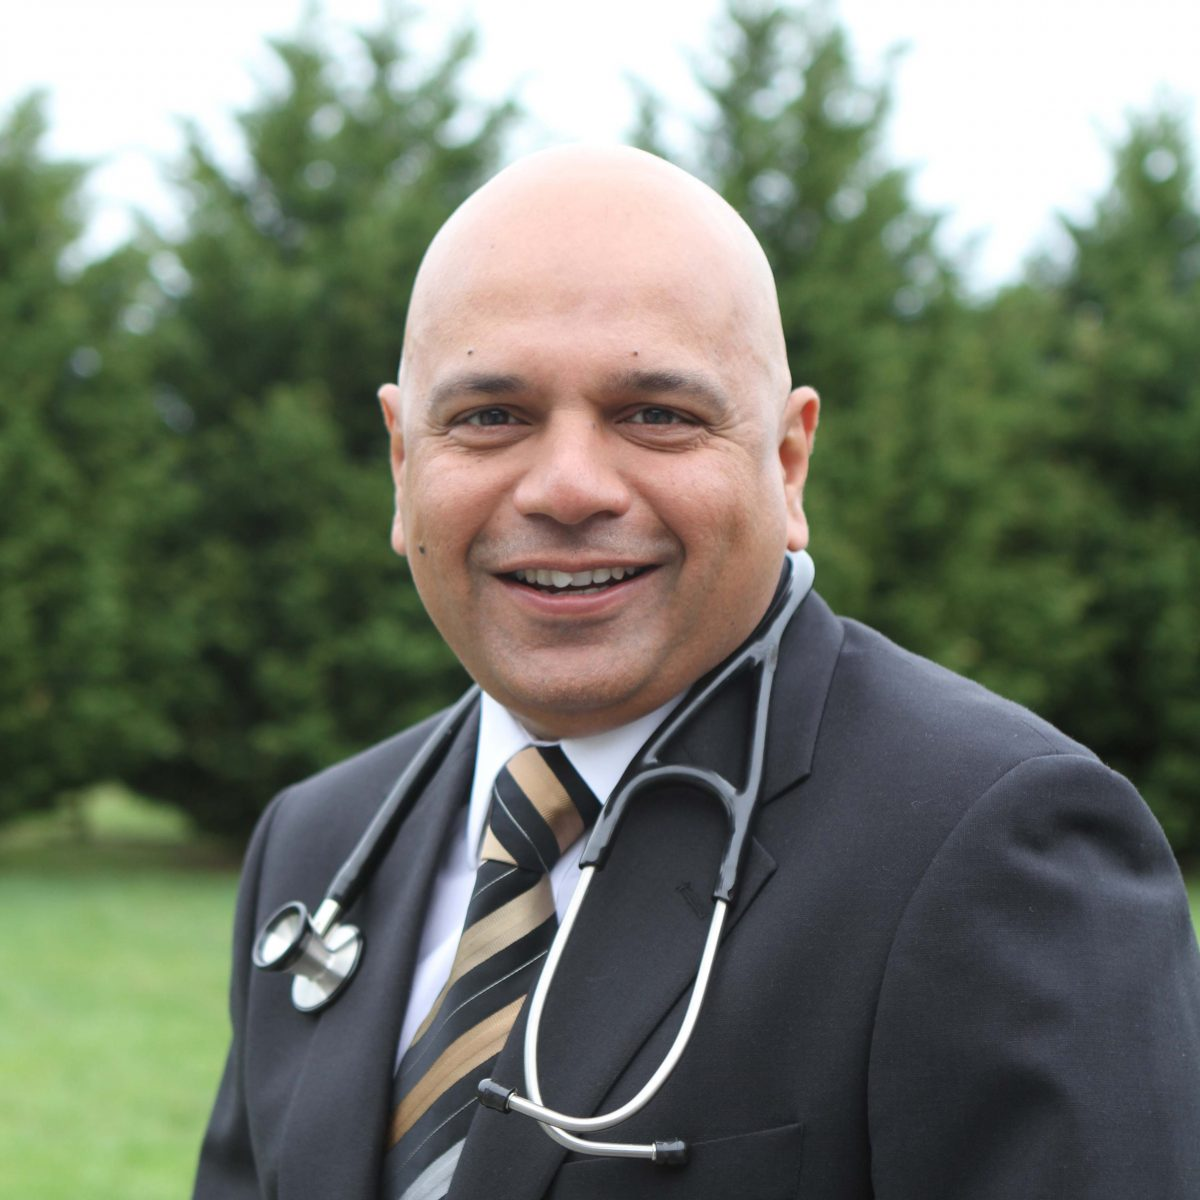 """Special Doc"" Uday Jani, MD, Explains How Concierge and Functional Medicine Intersect"